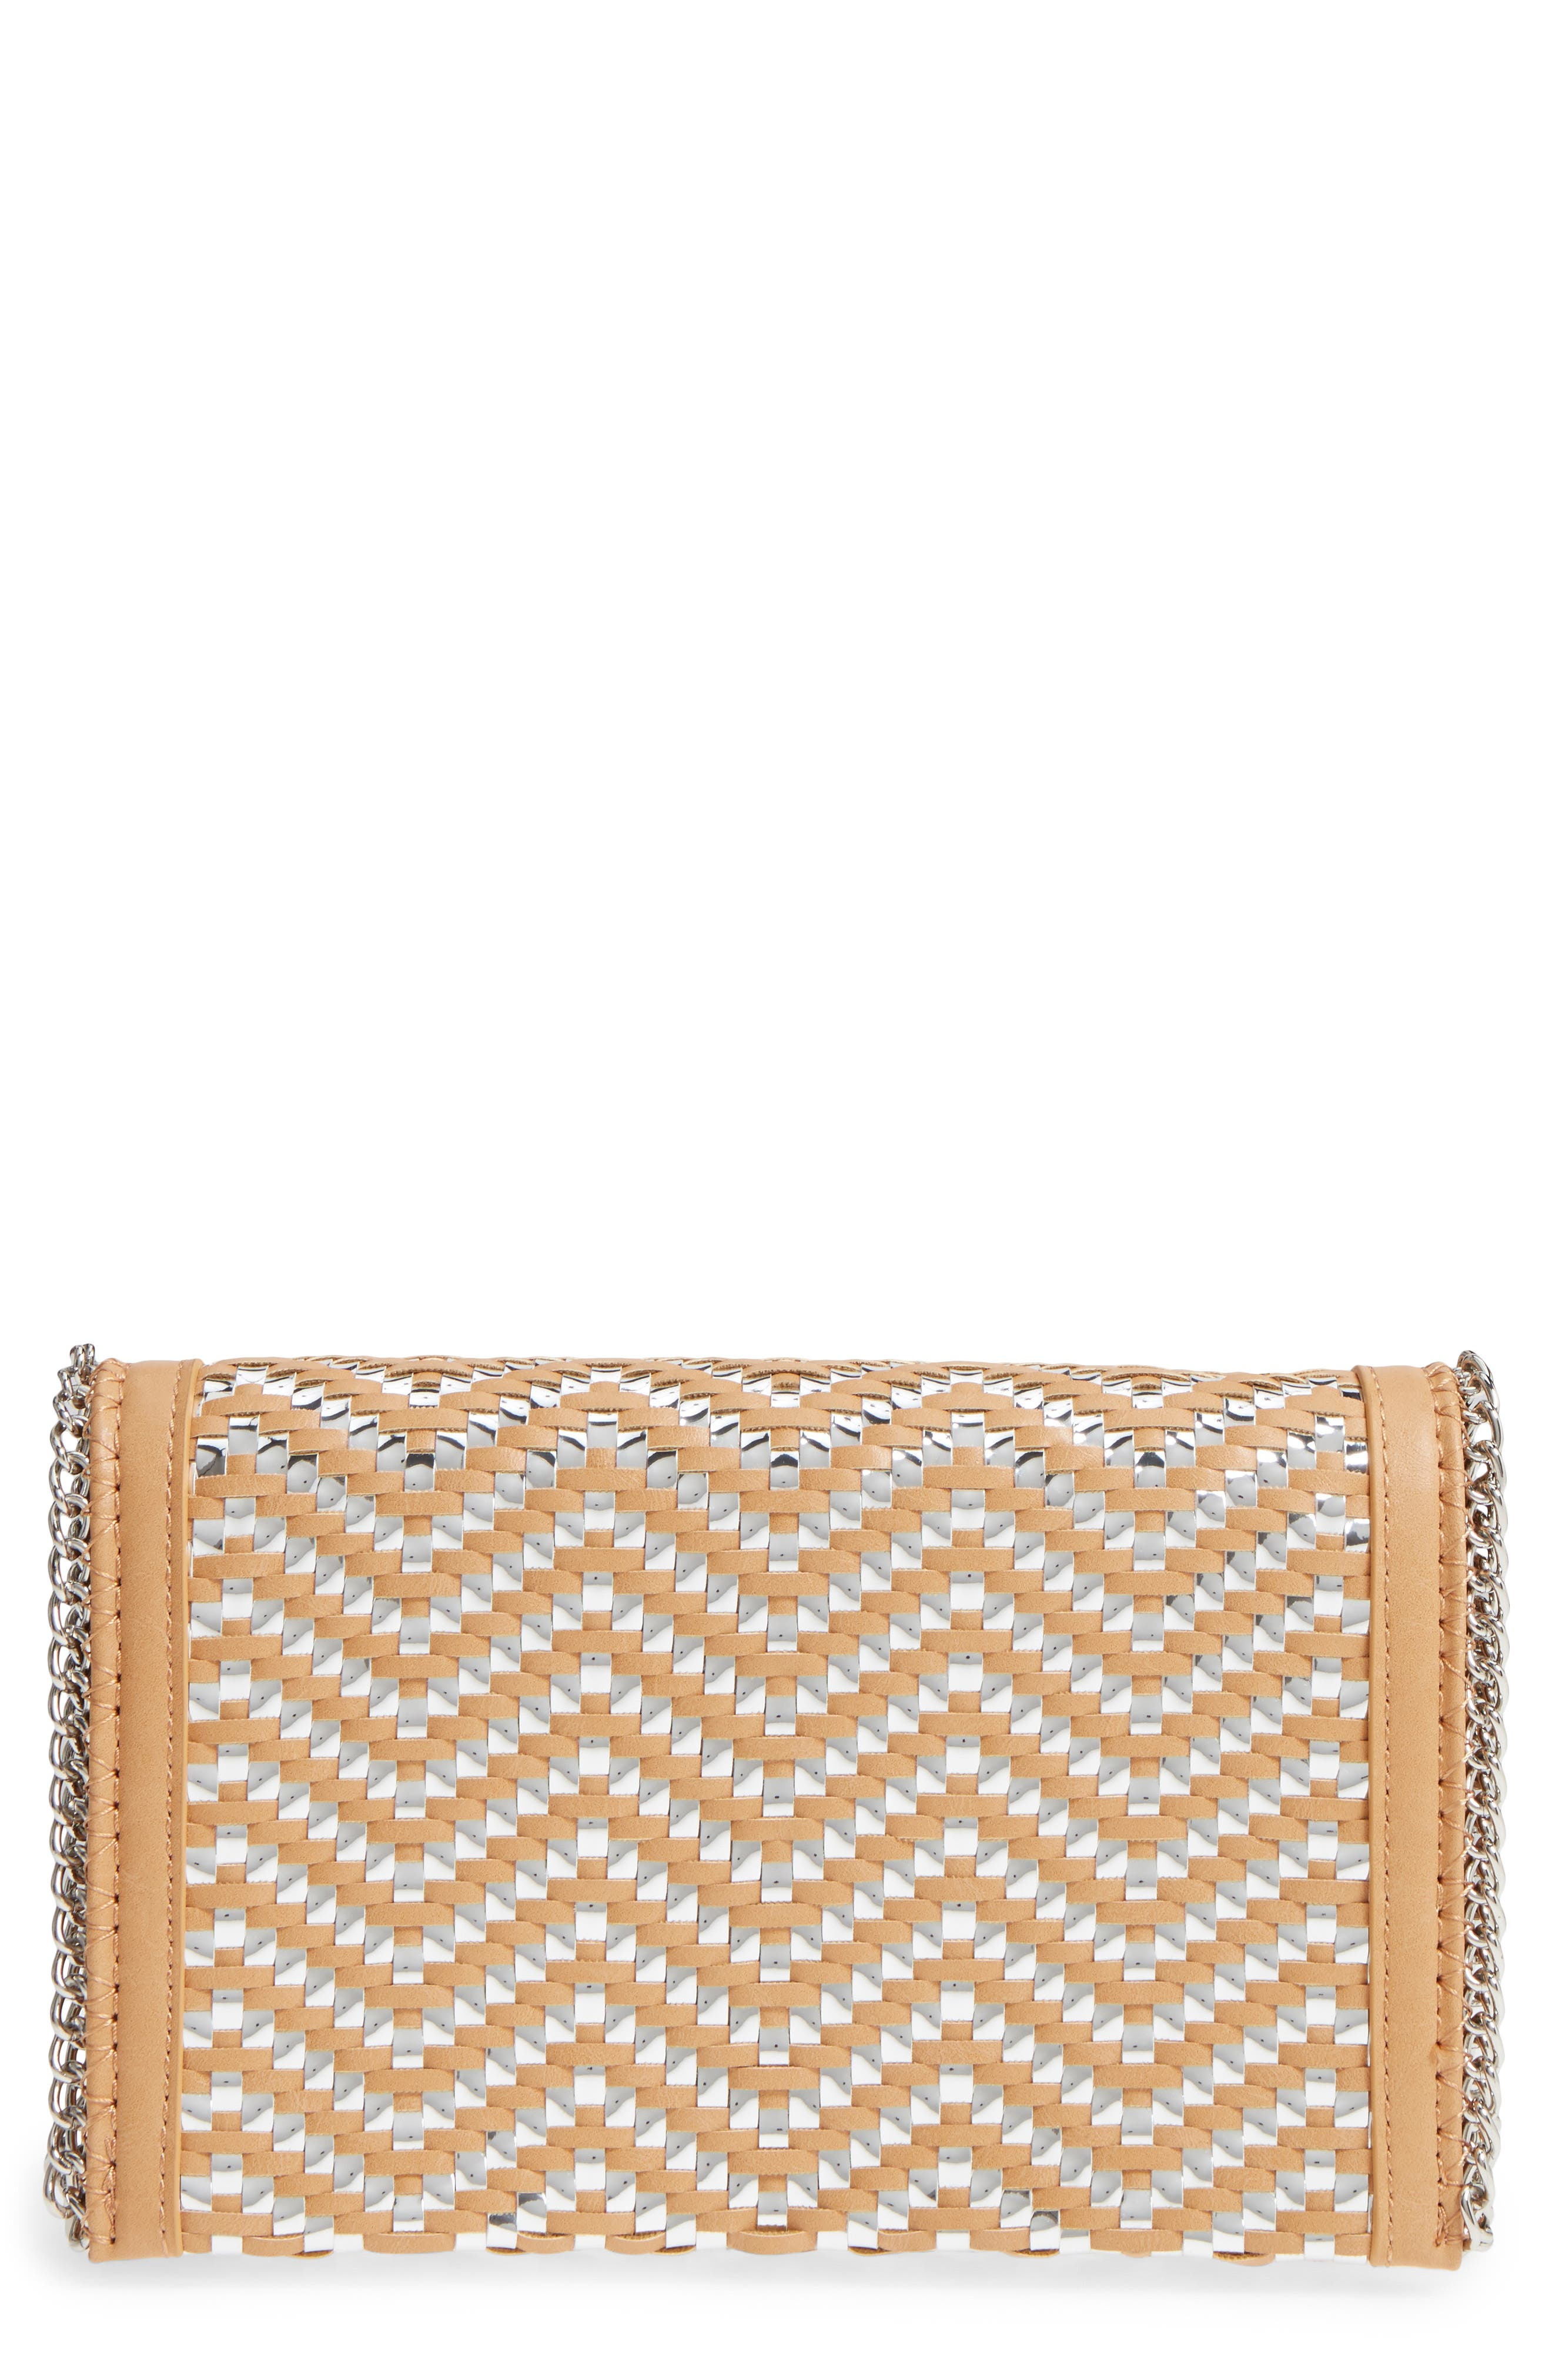 Chelsea28 Woven Faux Leather Clutch